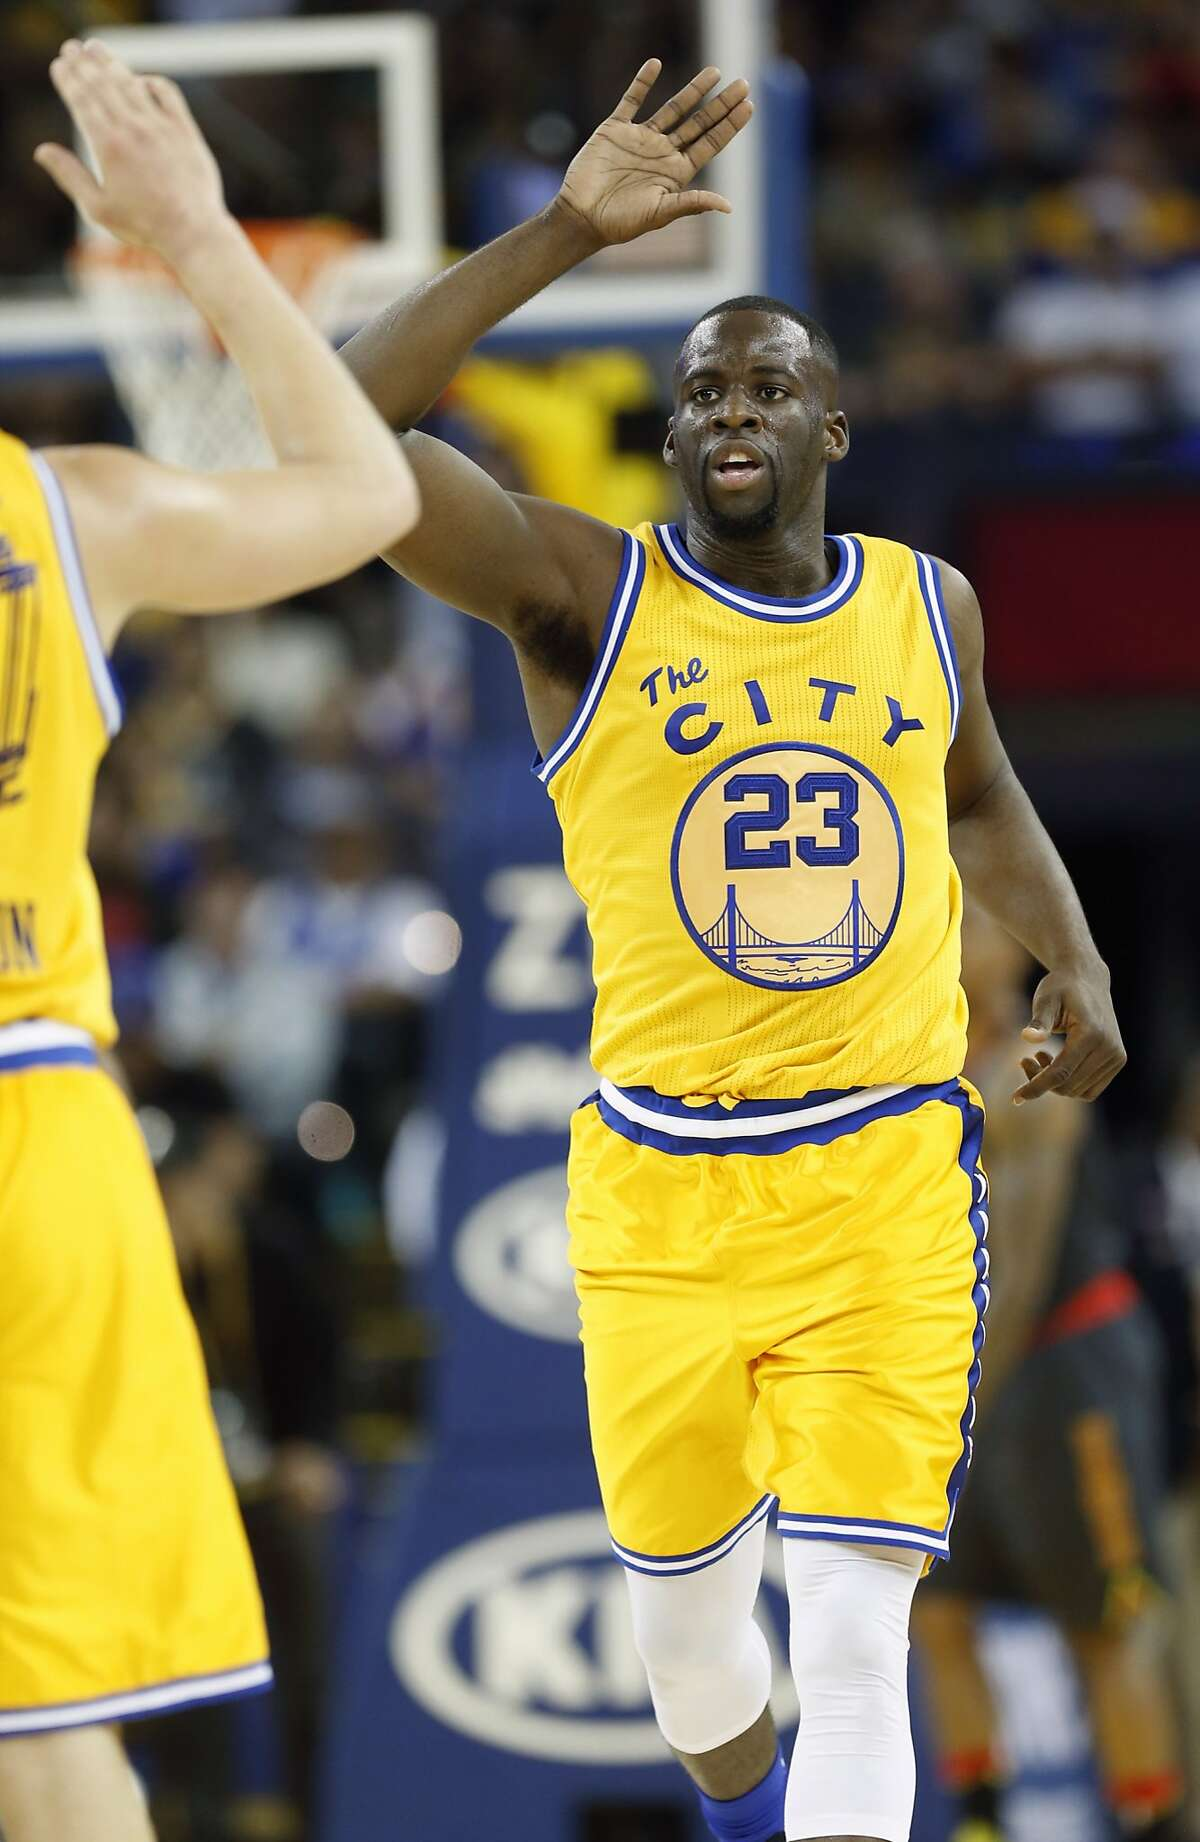 Golden State Warriors' Draymond Green celebrates a basket in 2nd quarter against Atlanta Hawks during NBA game at Oracle Arena in Oakland, Calif., on Tuesday, March 1, 2016.